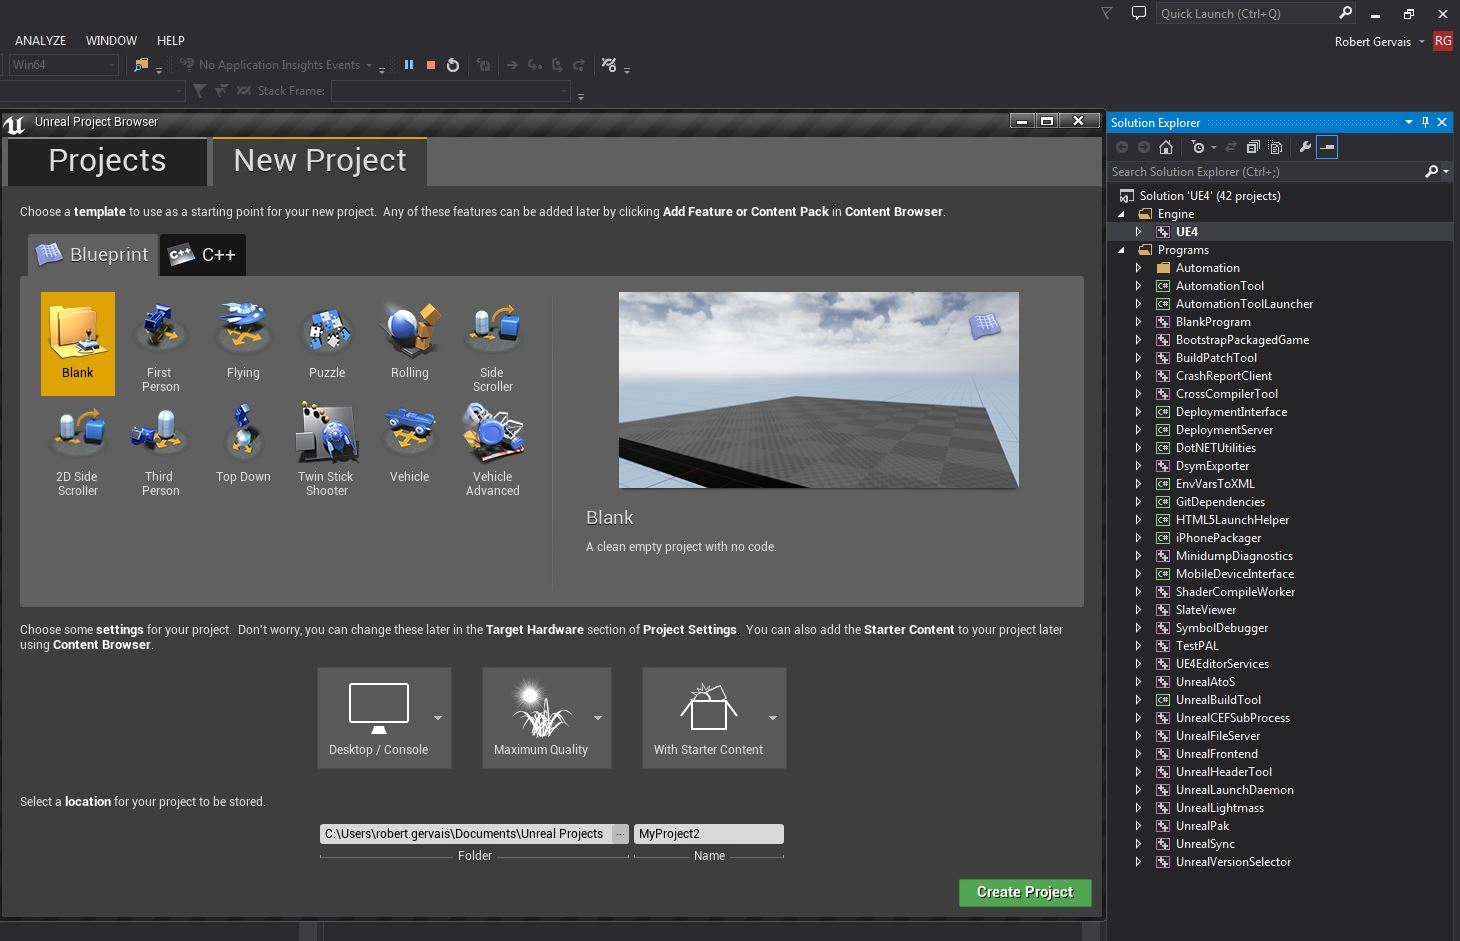 Tutorial - Downloading and compiling the Unreal Engine source code